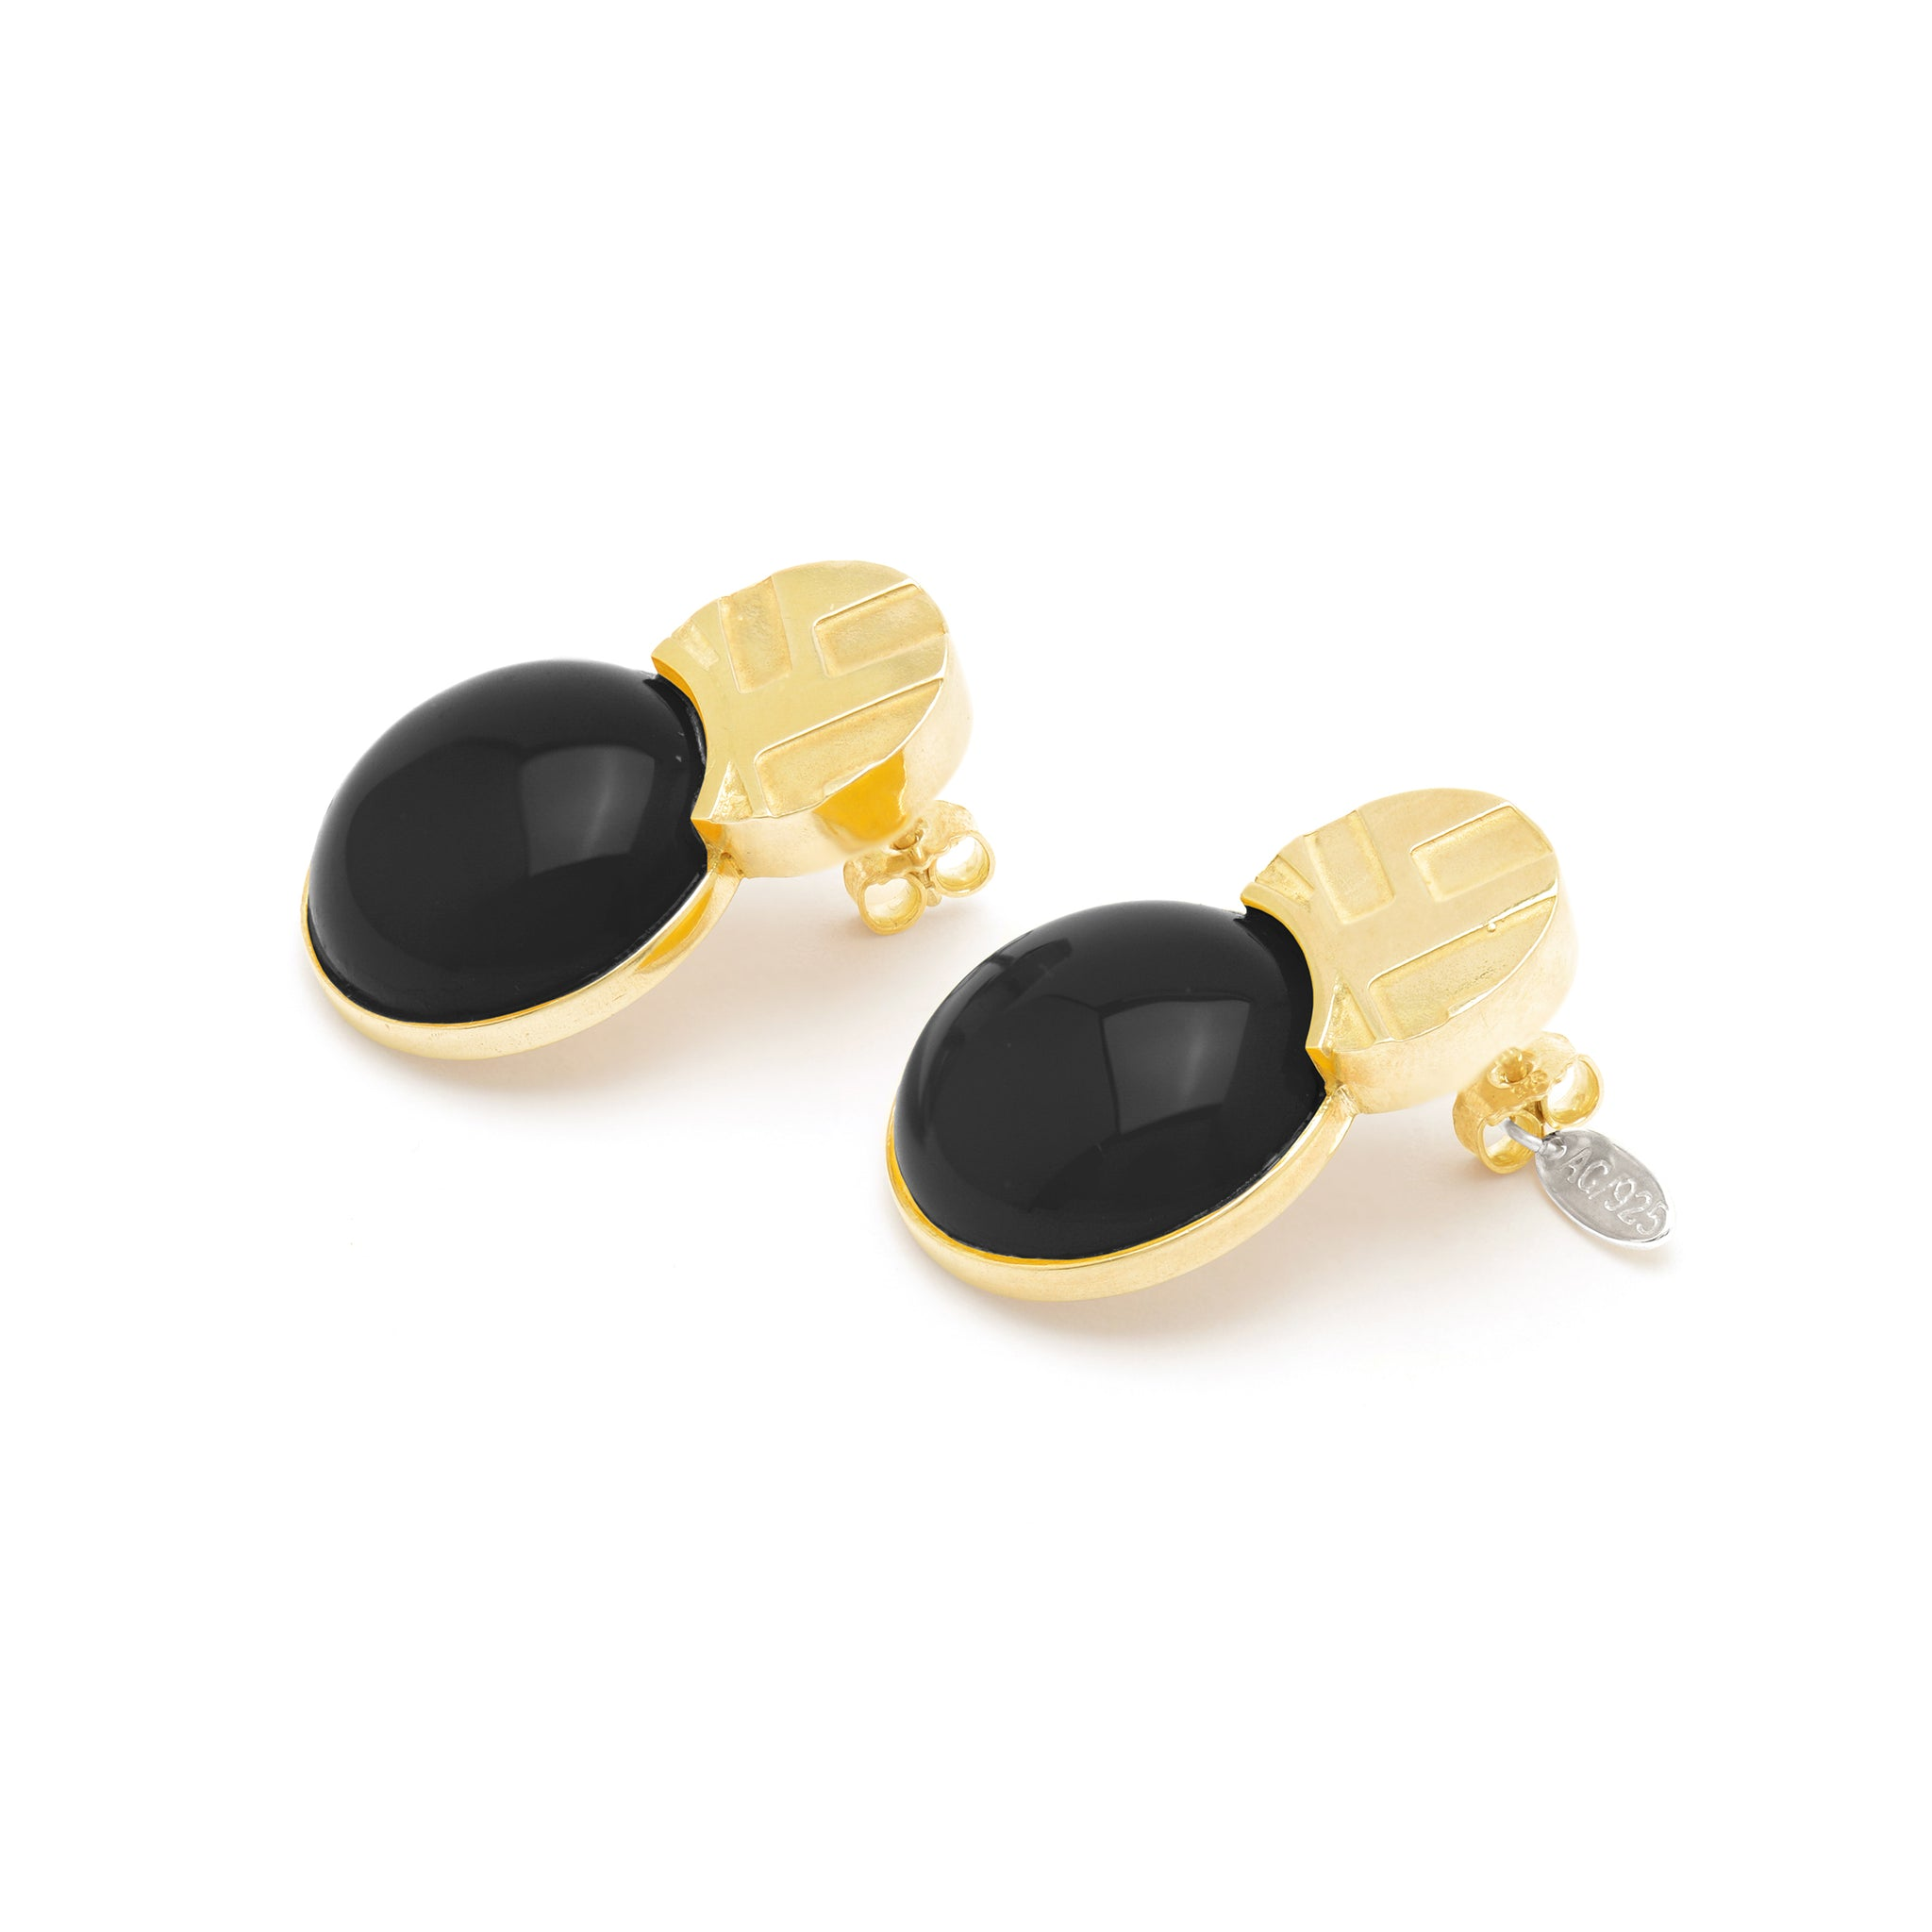 Etched Stud Earrings with Onyx stone